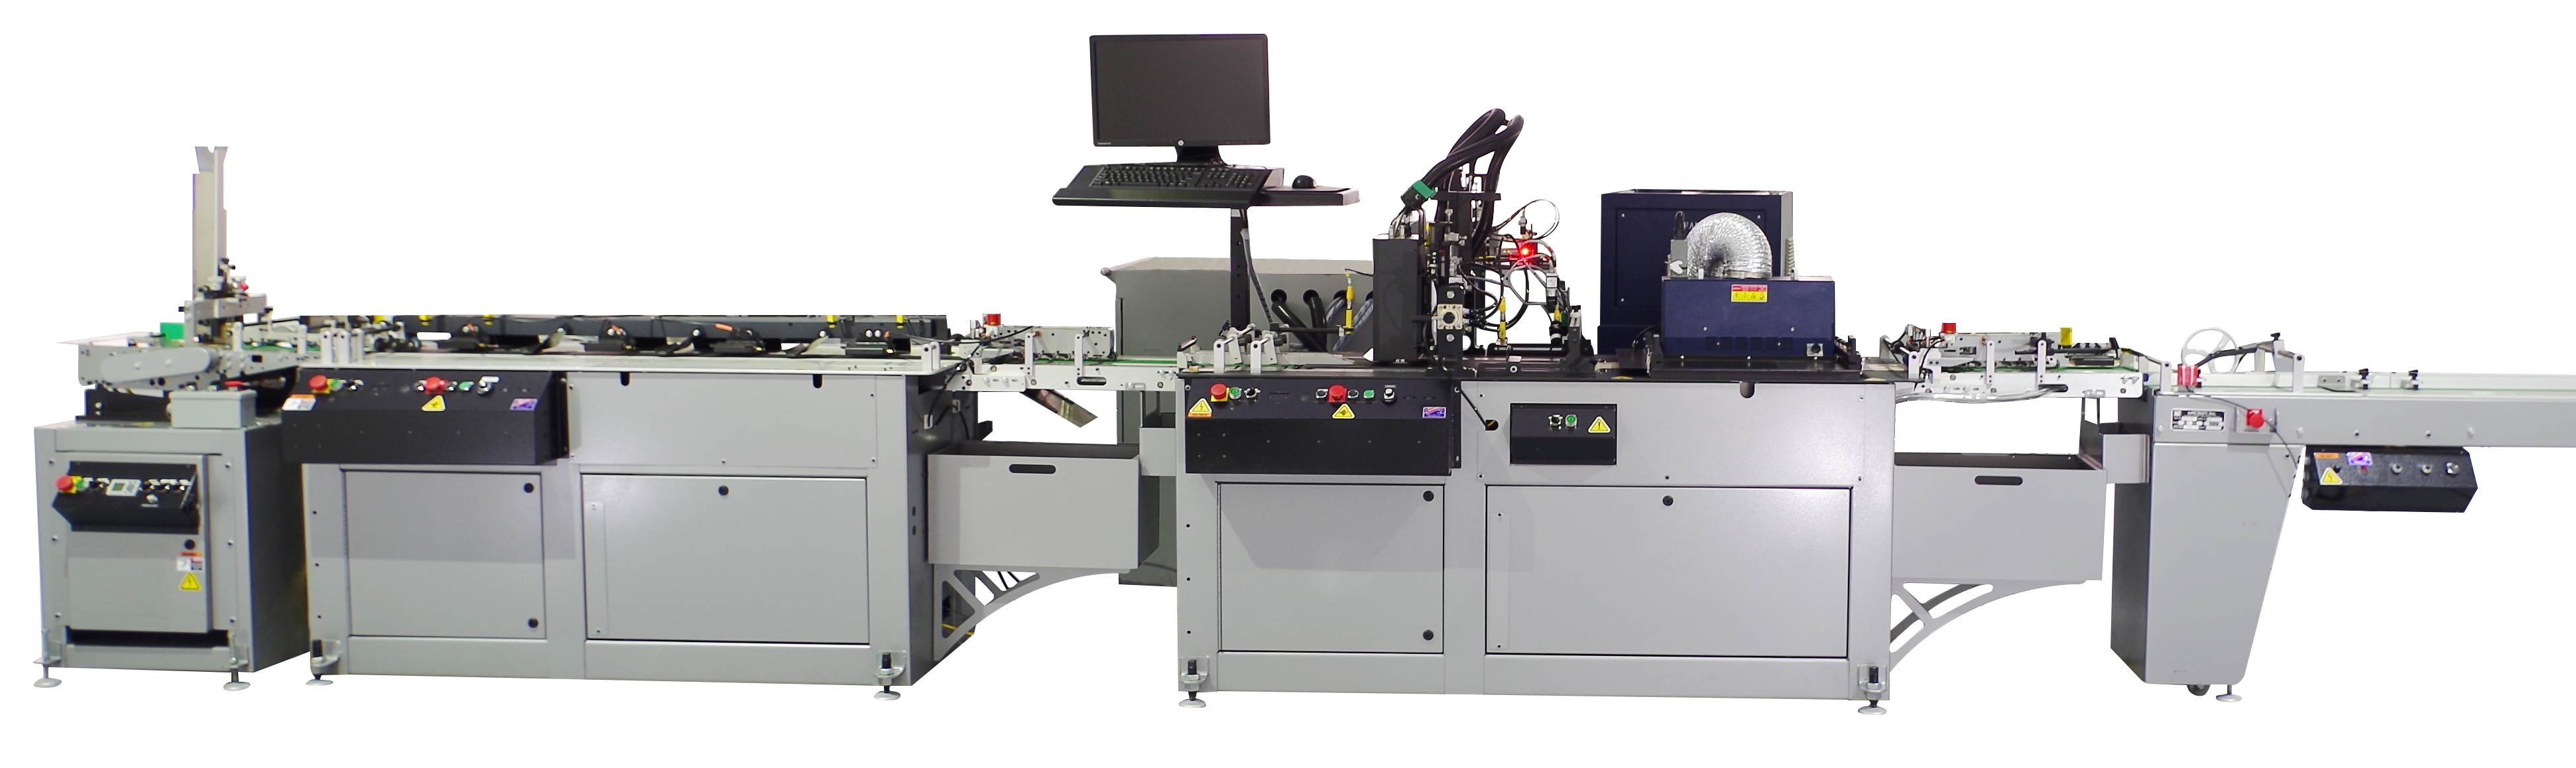 RFID Encoding and Printing Production System